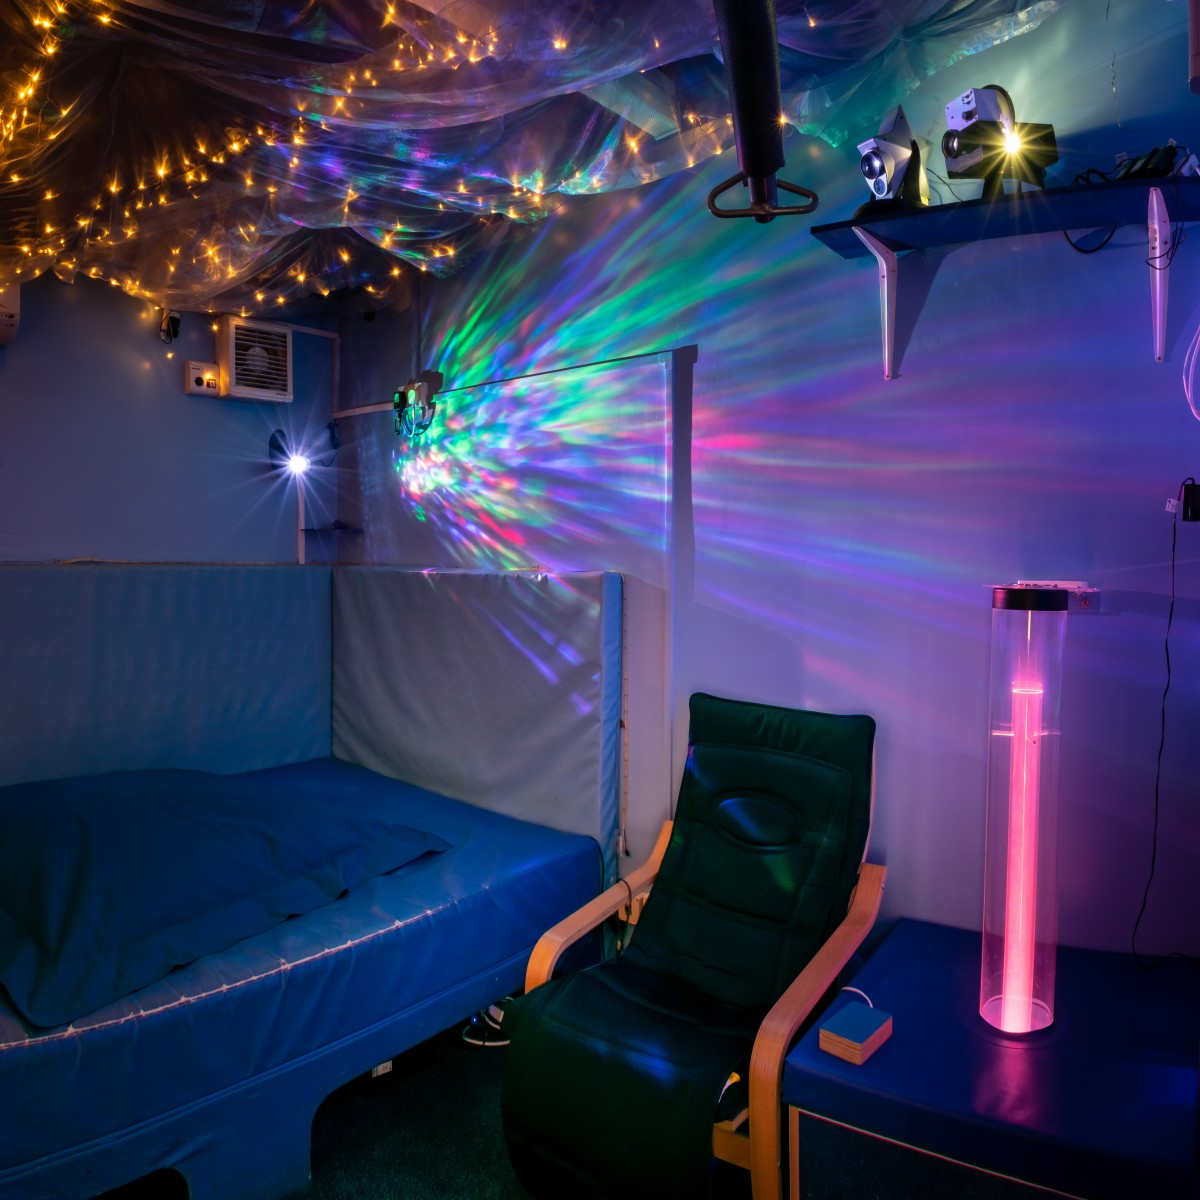 Sensory room with colourful lights